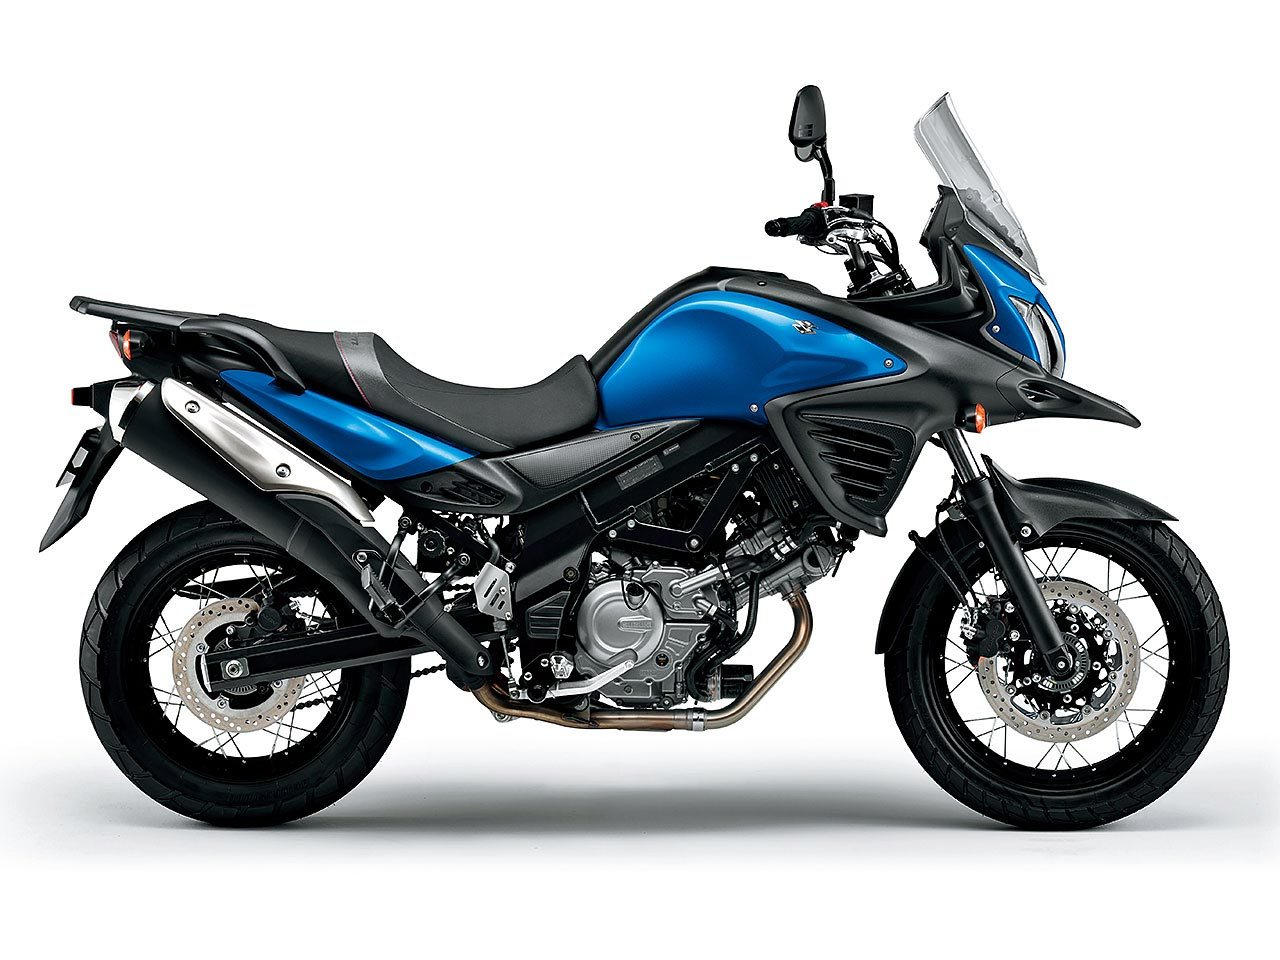 2015 Suzuki DL650 V-Strom Service Manual